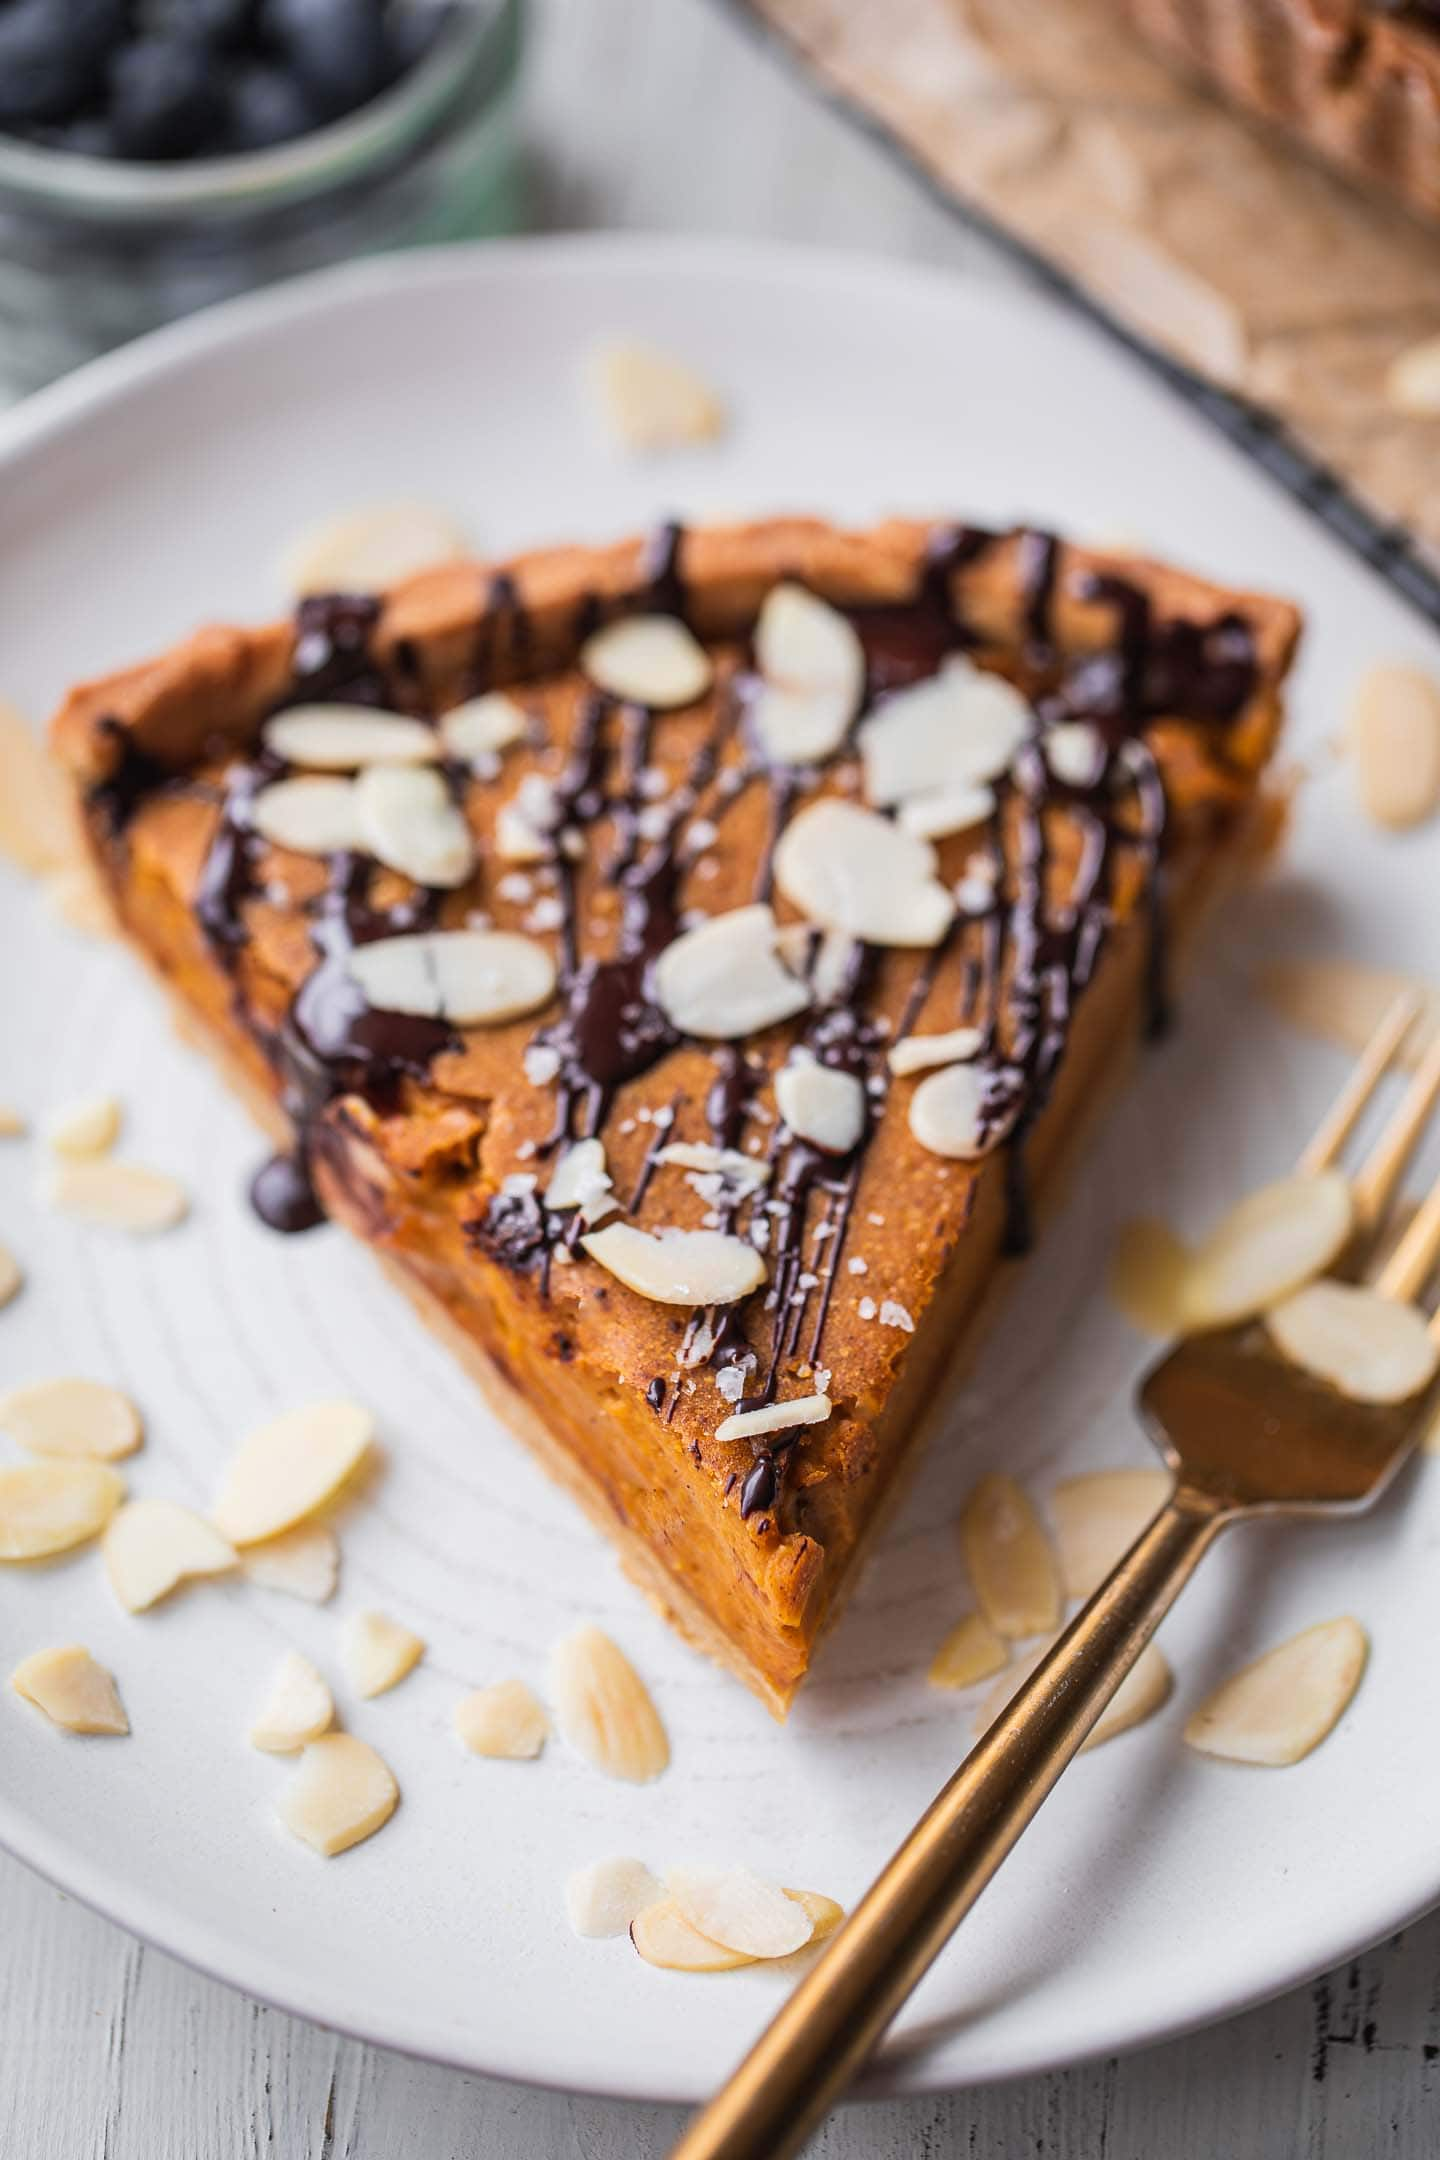 Pumpkin pie with a chocolate drizzle on a plate